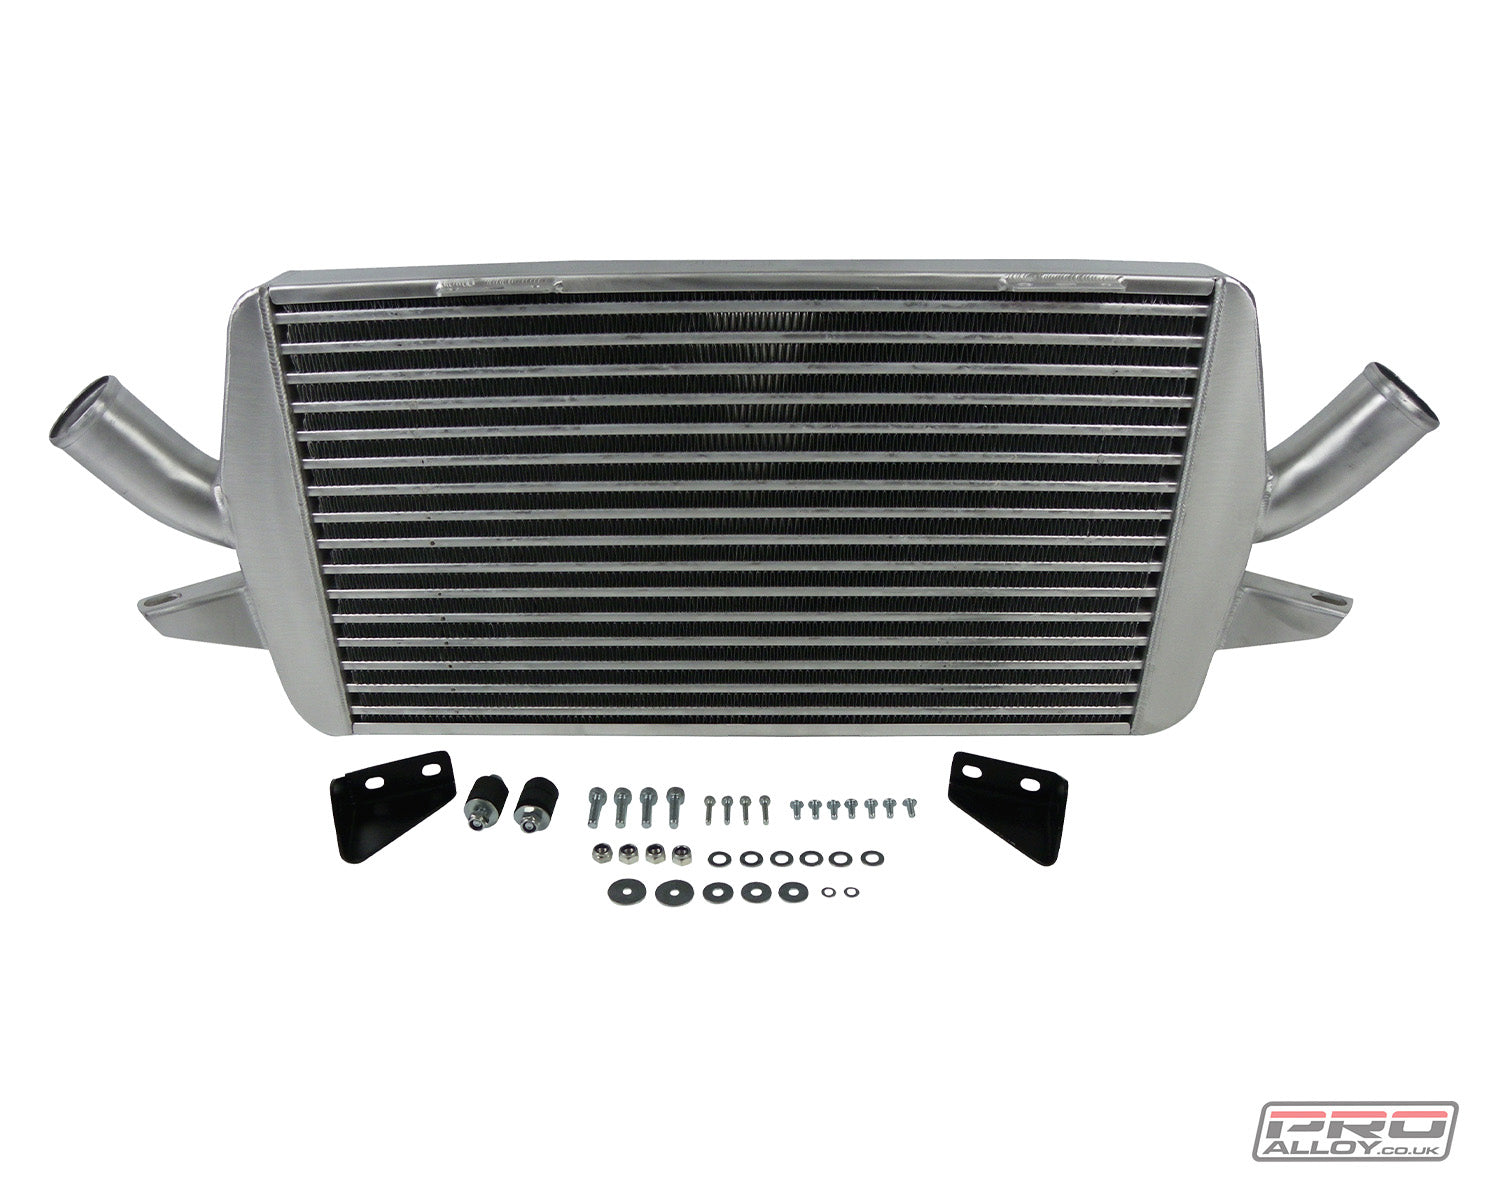 Vectra VXR Intercooler